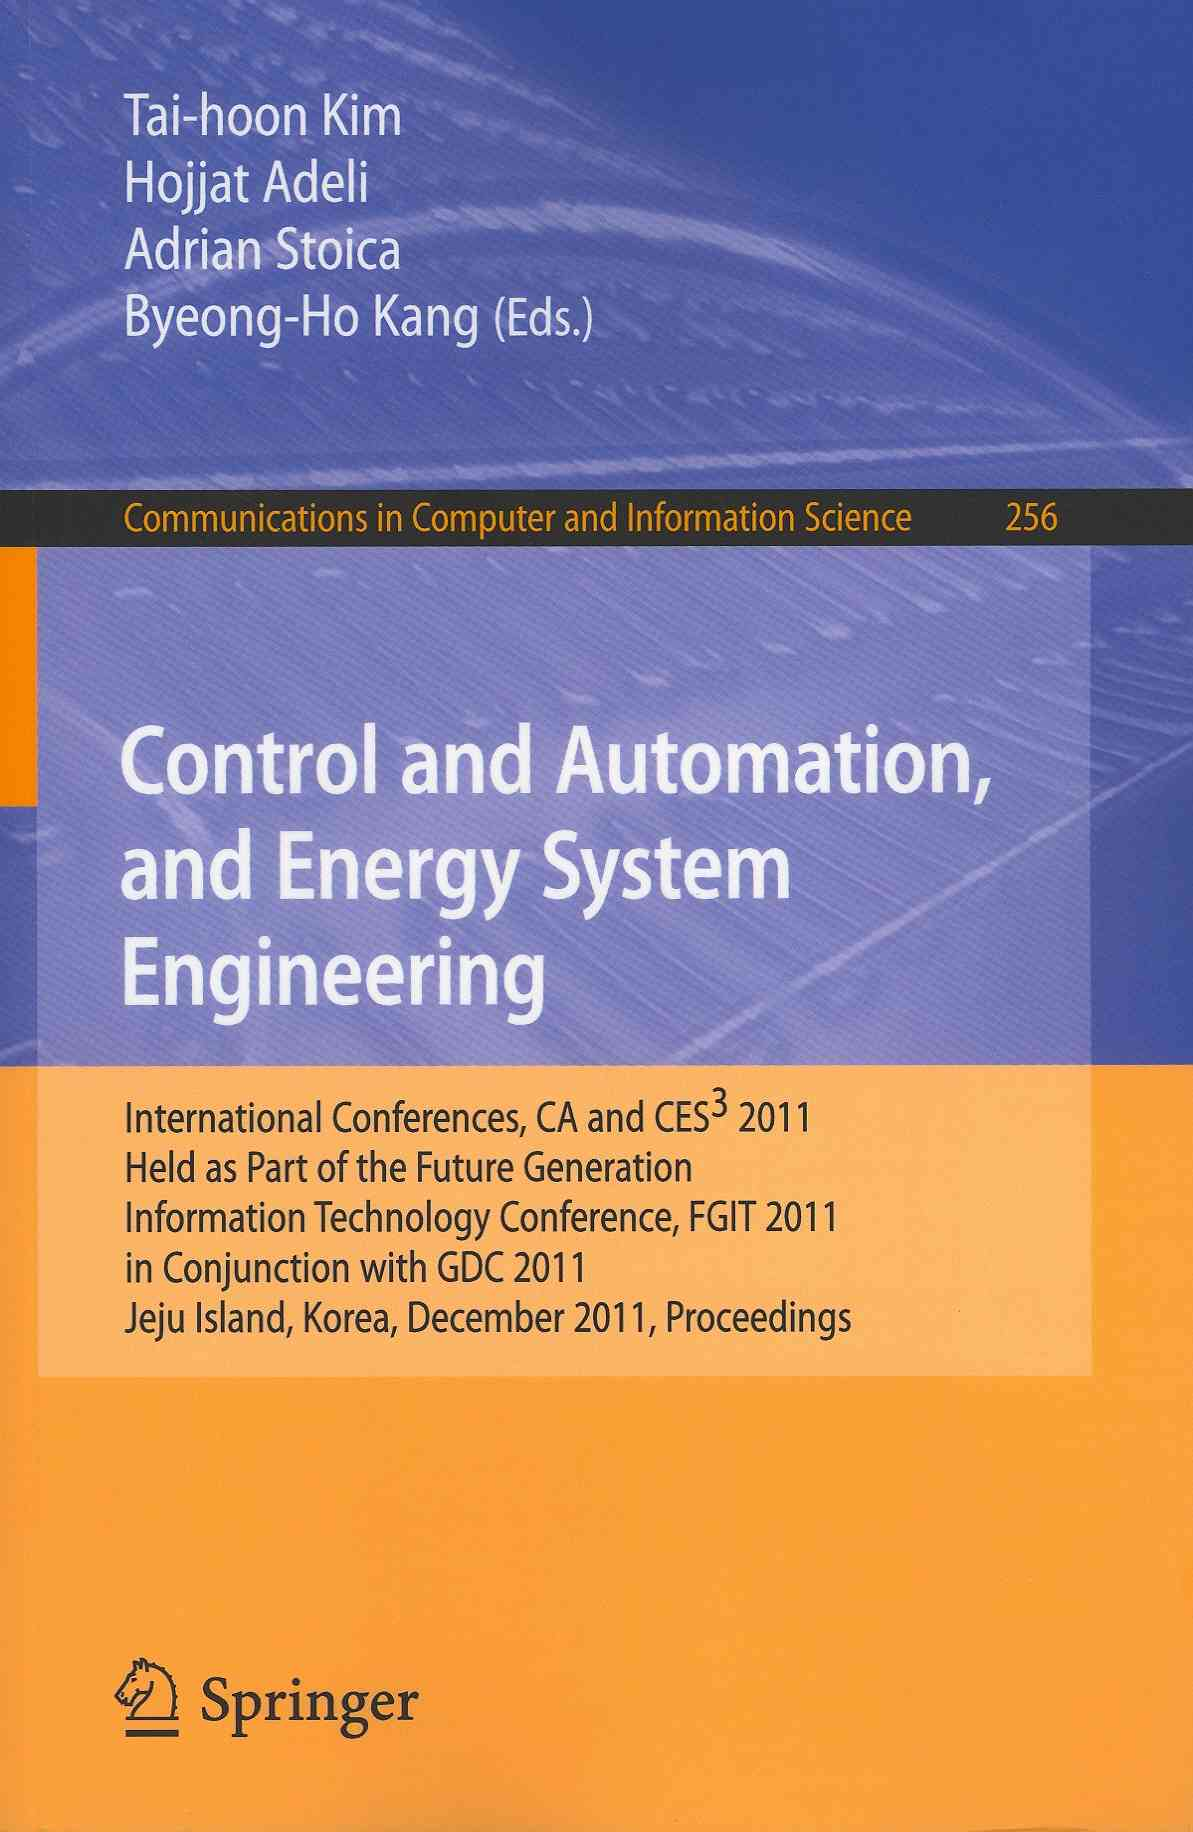 Control and Automation, and Energy System Engineering By Kim, Tai-hoon (EDT)/ Adeli, Hojjat (EDT)/ Stoica, Adrian (EDT)/ Kang, Byeong-Ho (EDT)